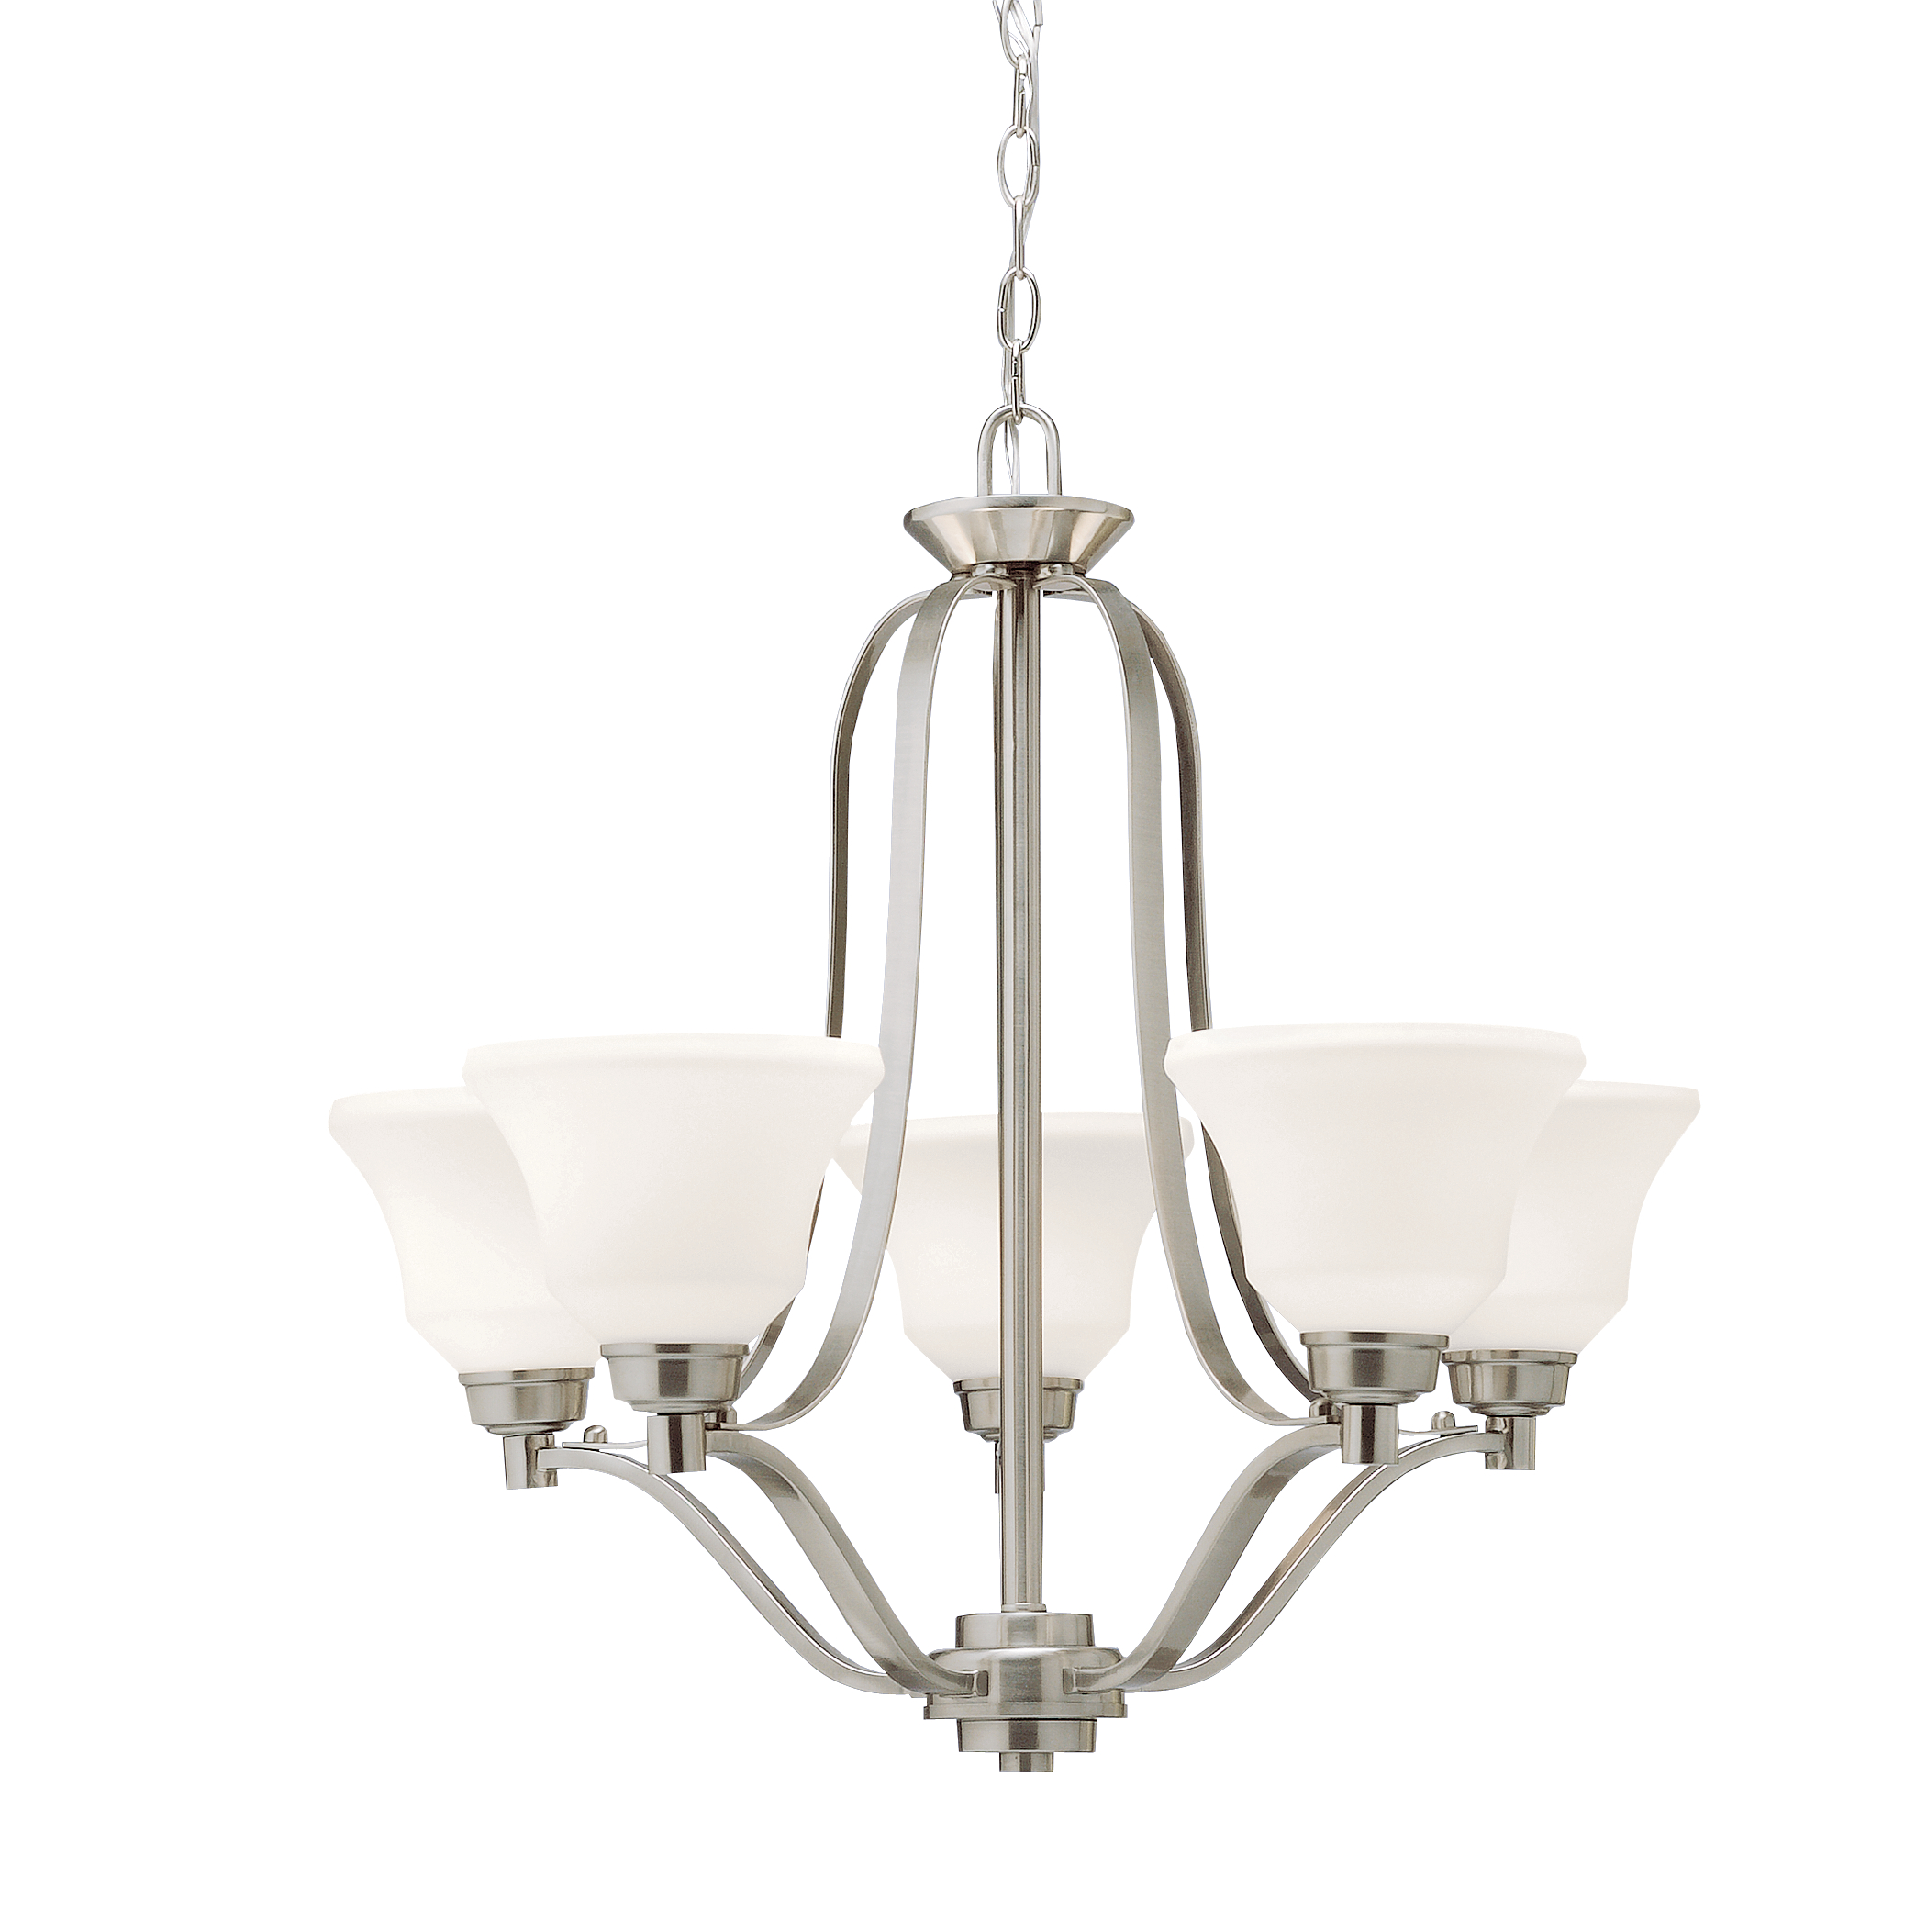 Kichler Langford LED Chandelier with White Etched White Shade - Brushed Nickel (1783NIL16)